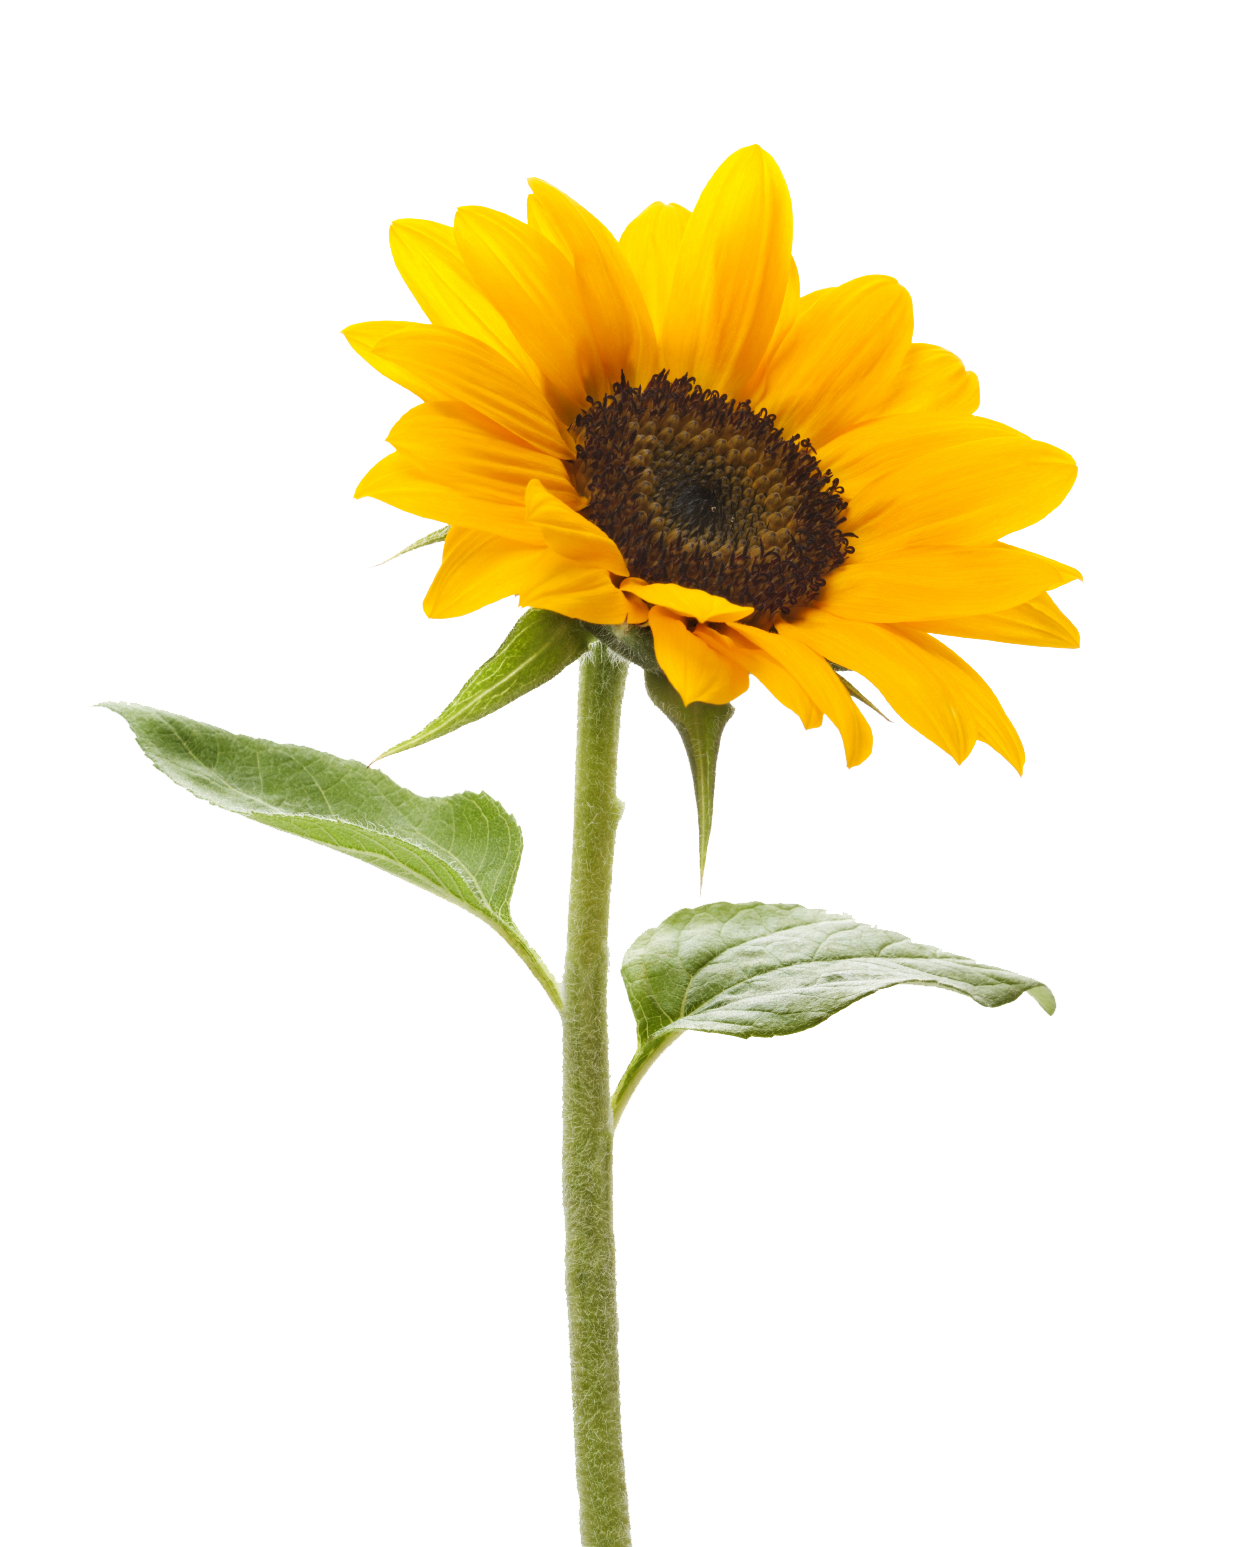 PNG Sunflower - 58135